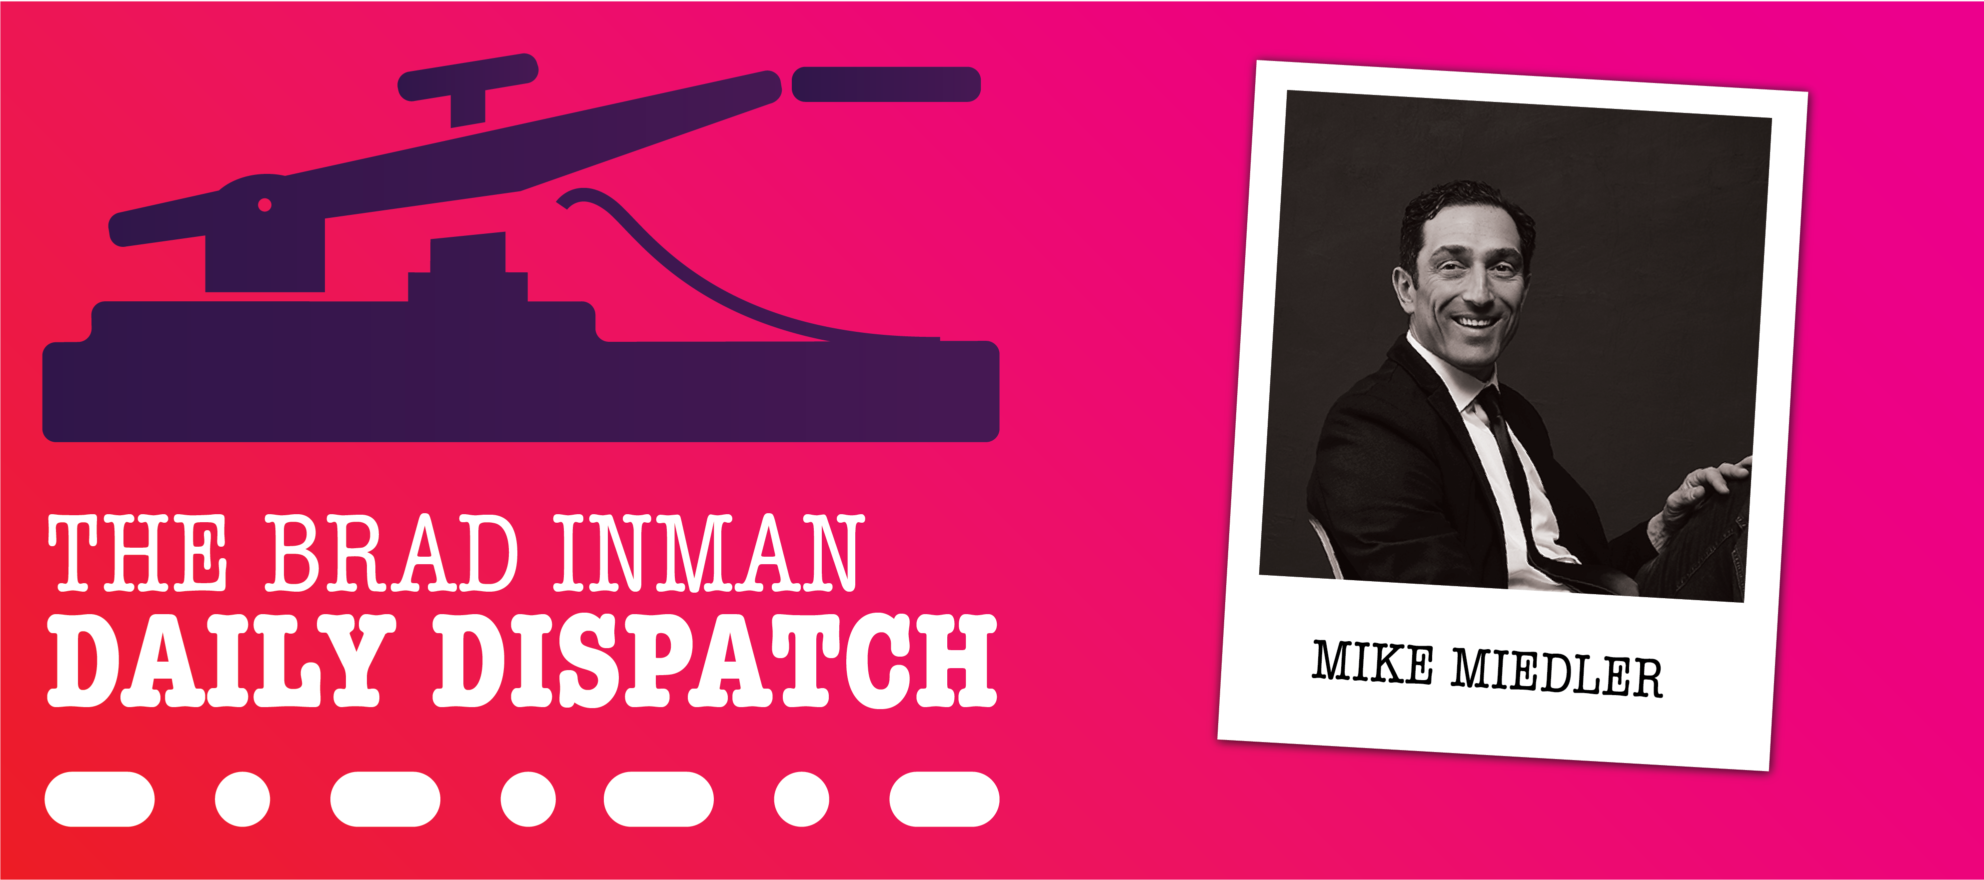 Daily Dispatch: Brad Inman with Mike Miedler